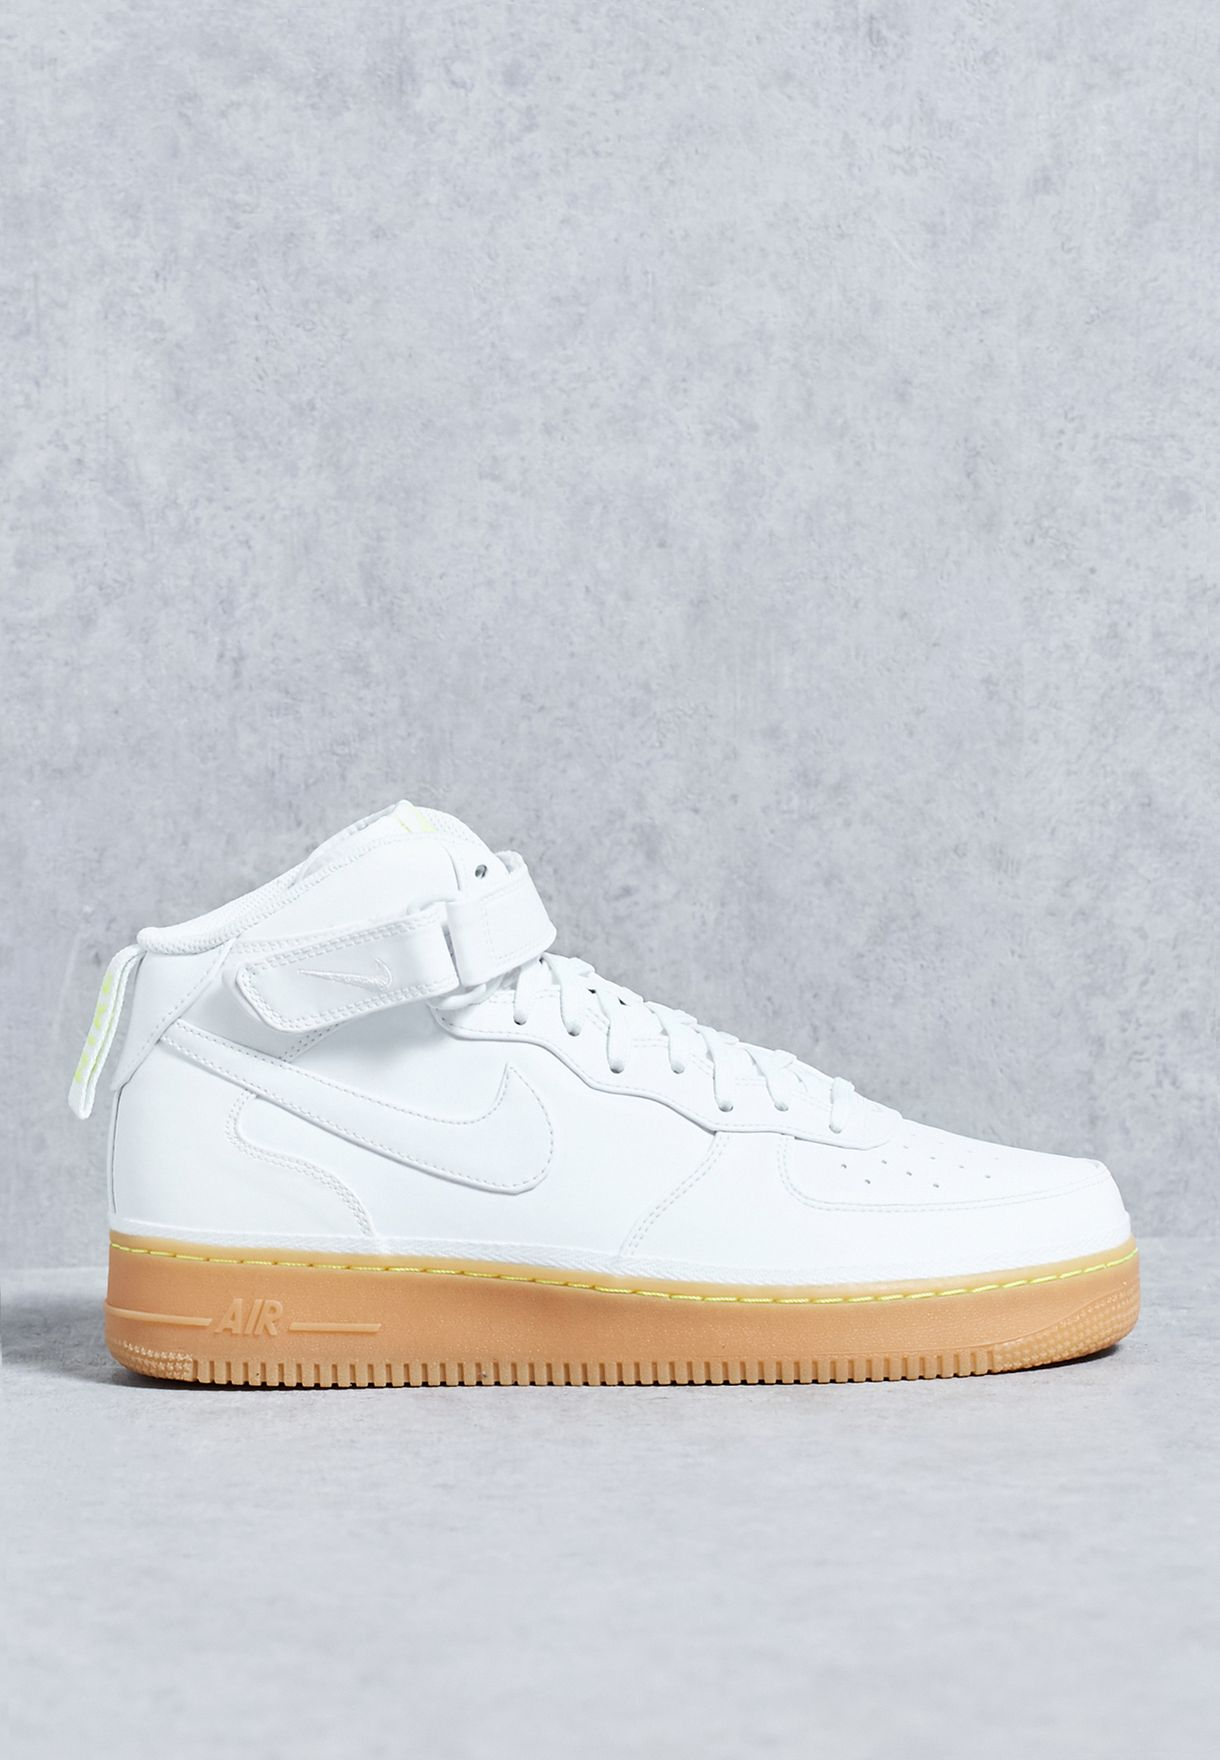 premium selection 62fb0 c770c Shop Nike white Air Force 1 Mid '07 LV8 804609-101 for Men in ...